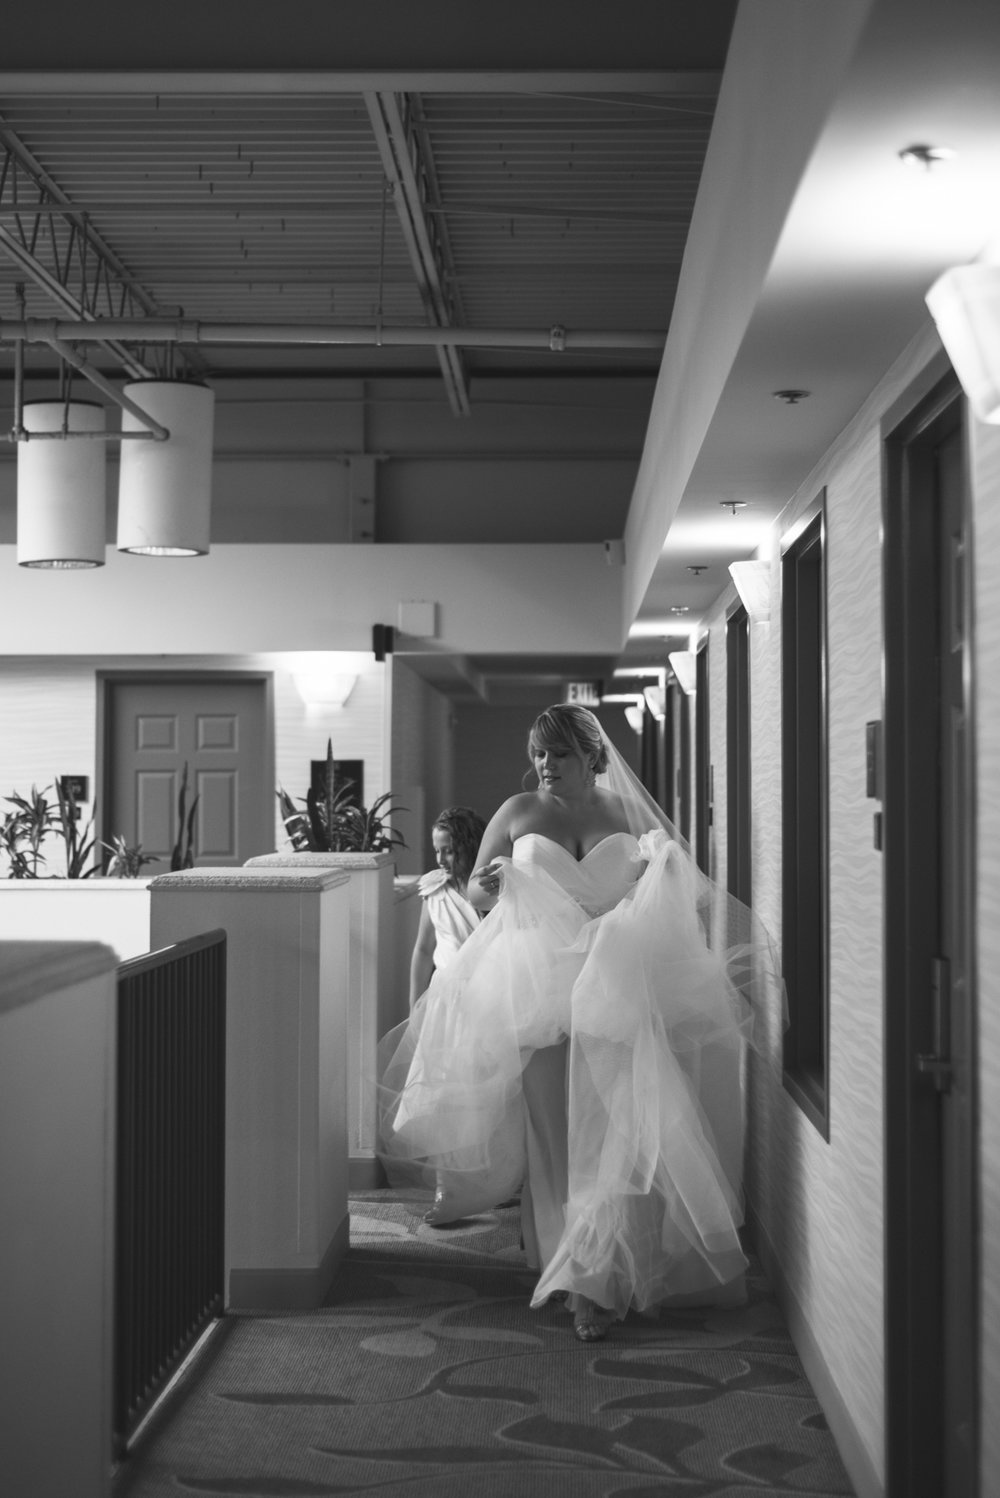 A+R_wedding_lhphotography © LH PHOTOGRAPHY 2014-0160.jpg